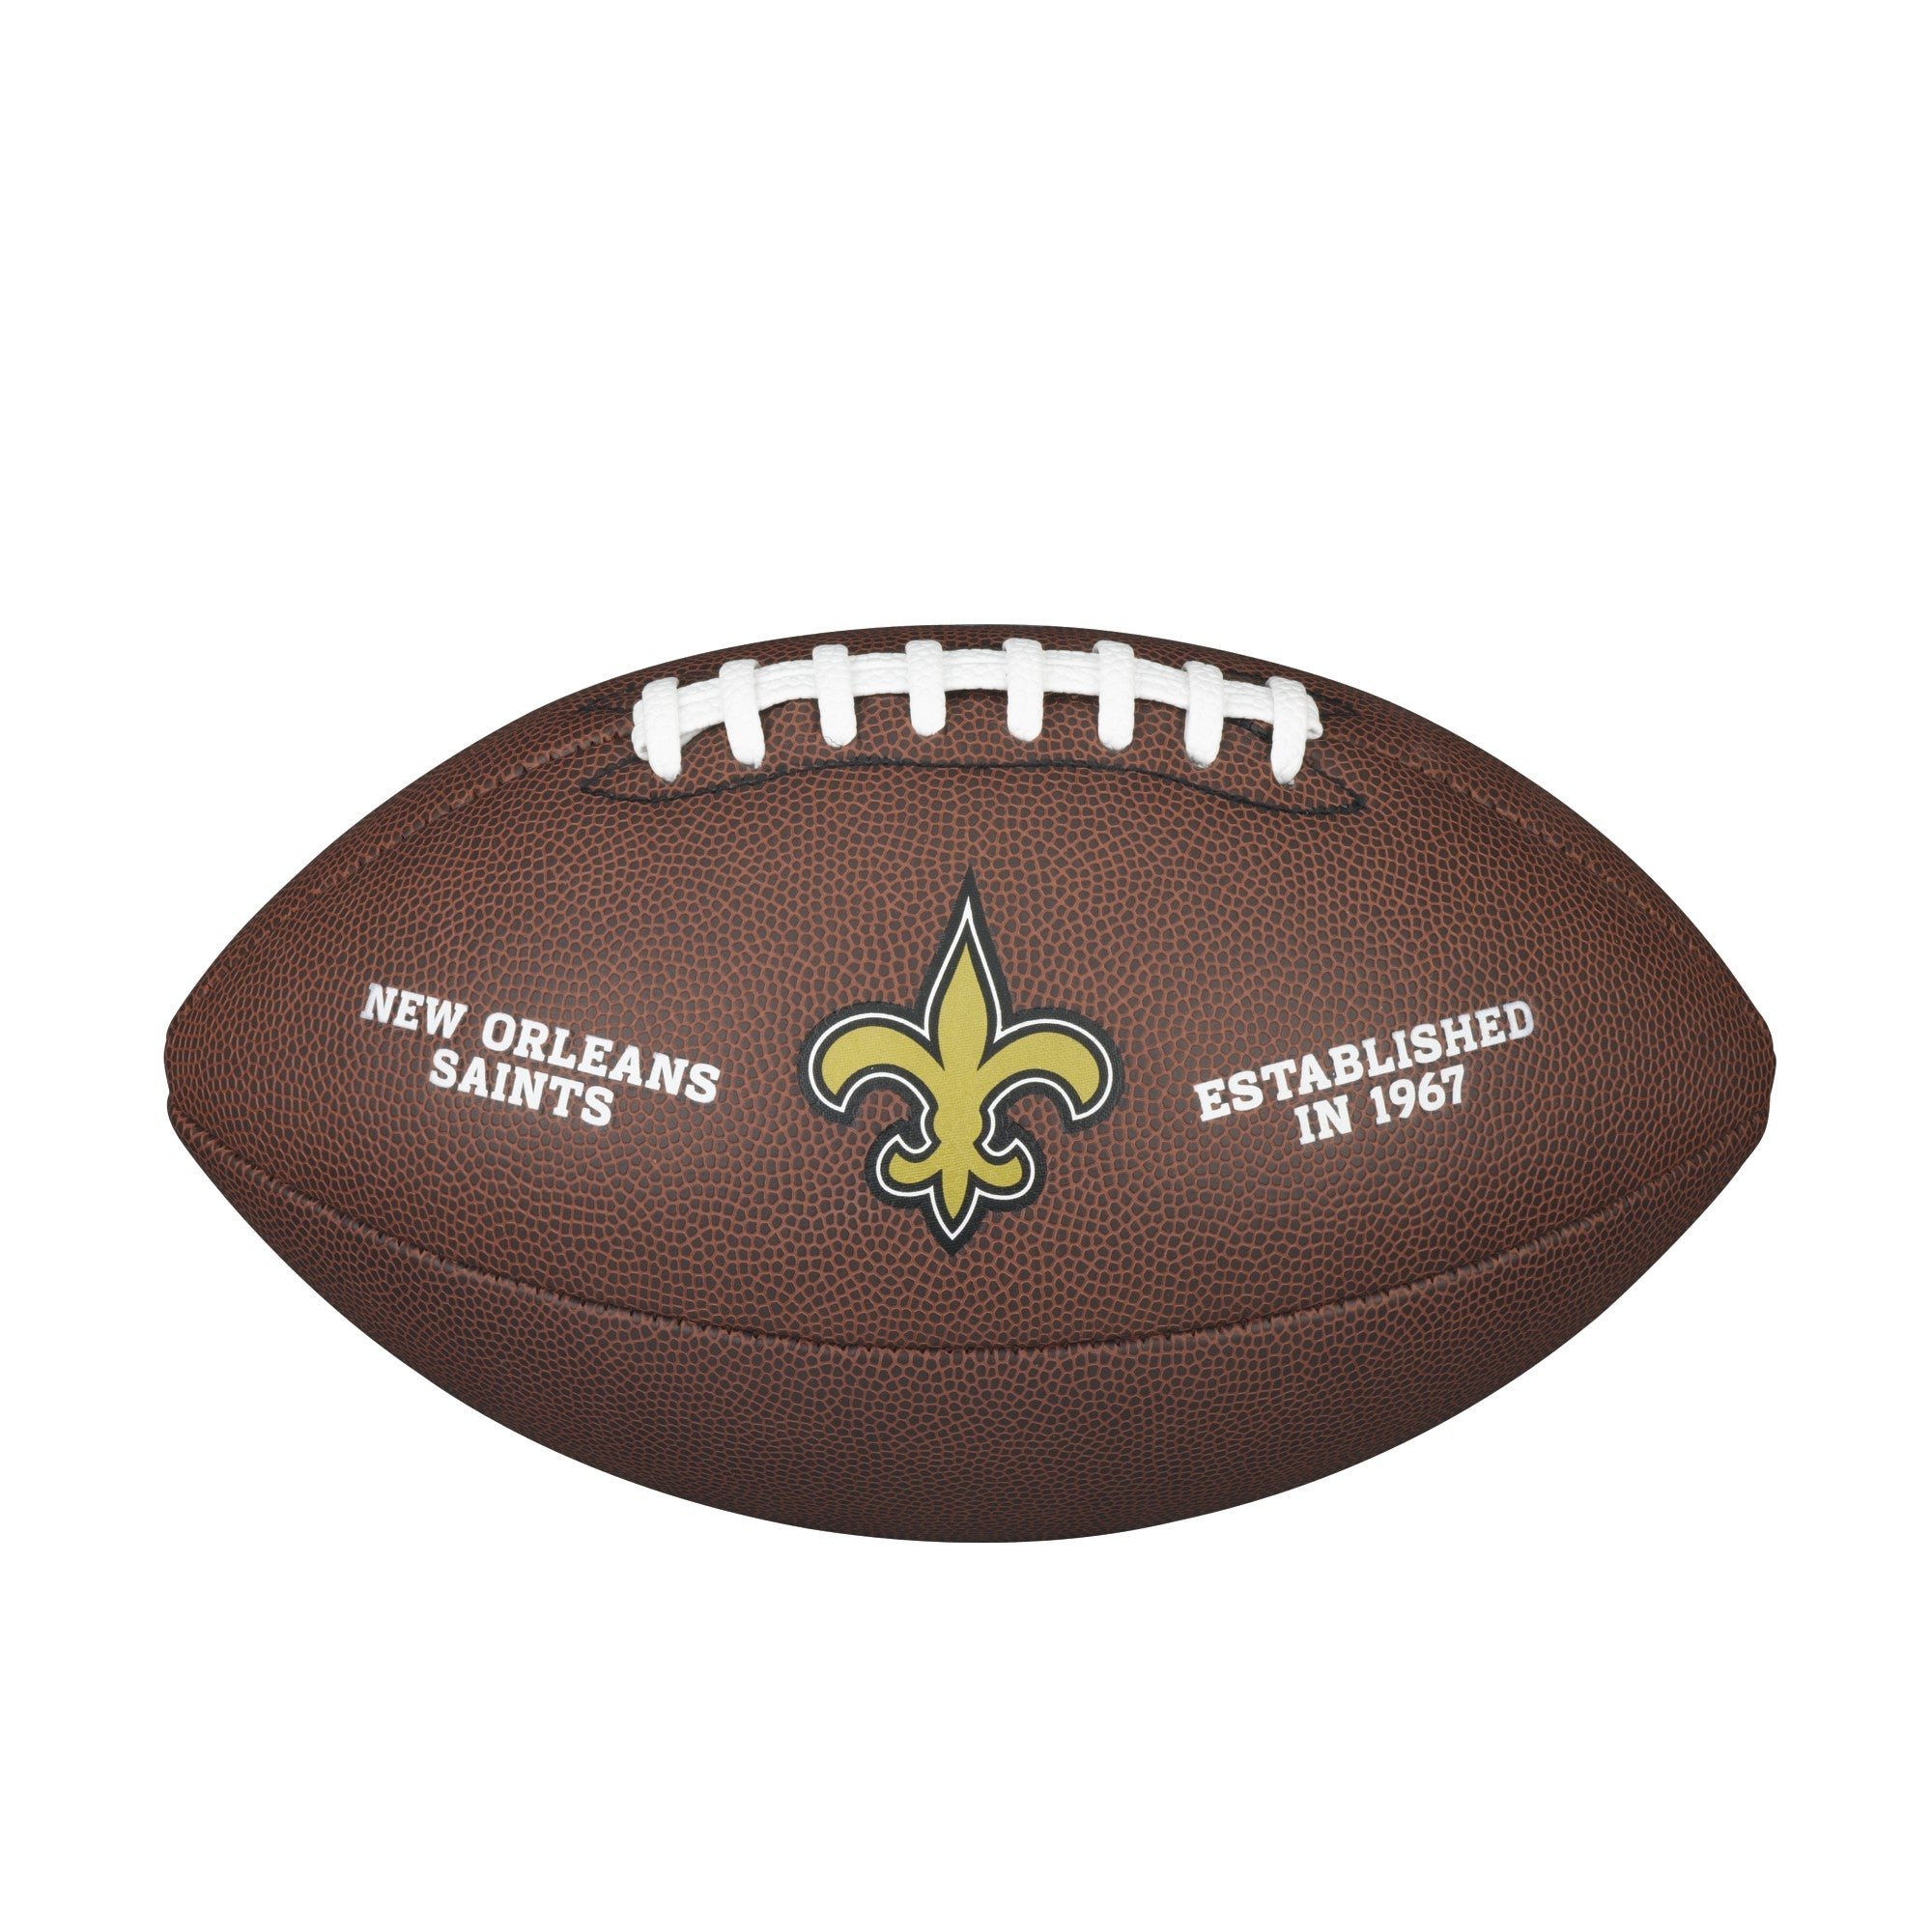 NFL TEAM LOGO COMPOSITE FOOTBALL - OFFICIAL, NEW ORLEANS SAINTS